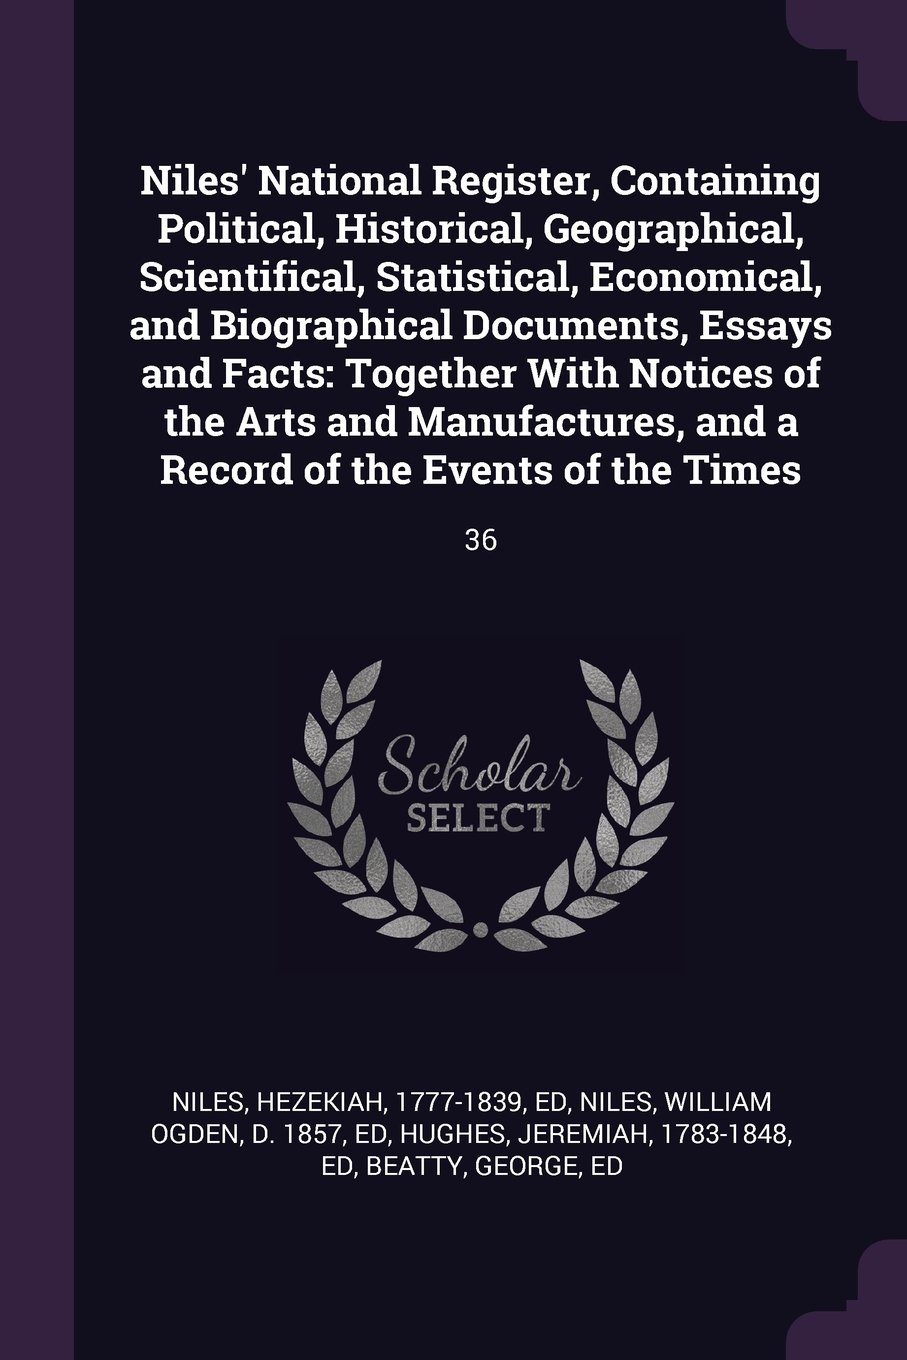 Niles' National Register, Containing Political, Historical, Geographical, Scientifical, Statistical, Economical, and Biographical Documents, Essays ... and a Record of the Events of the Times: 36 ebook